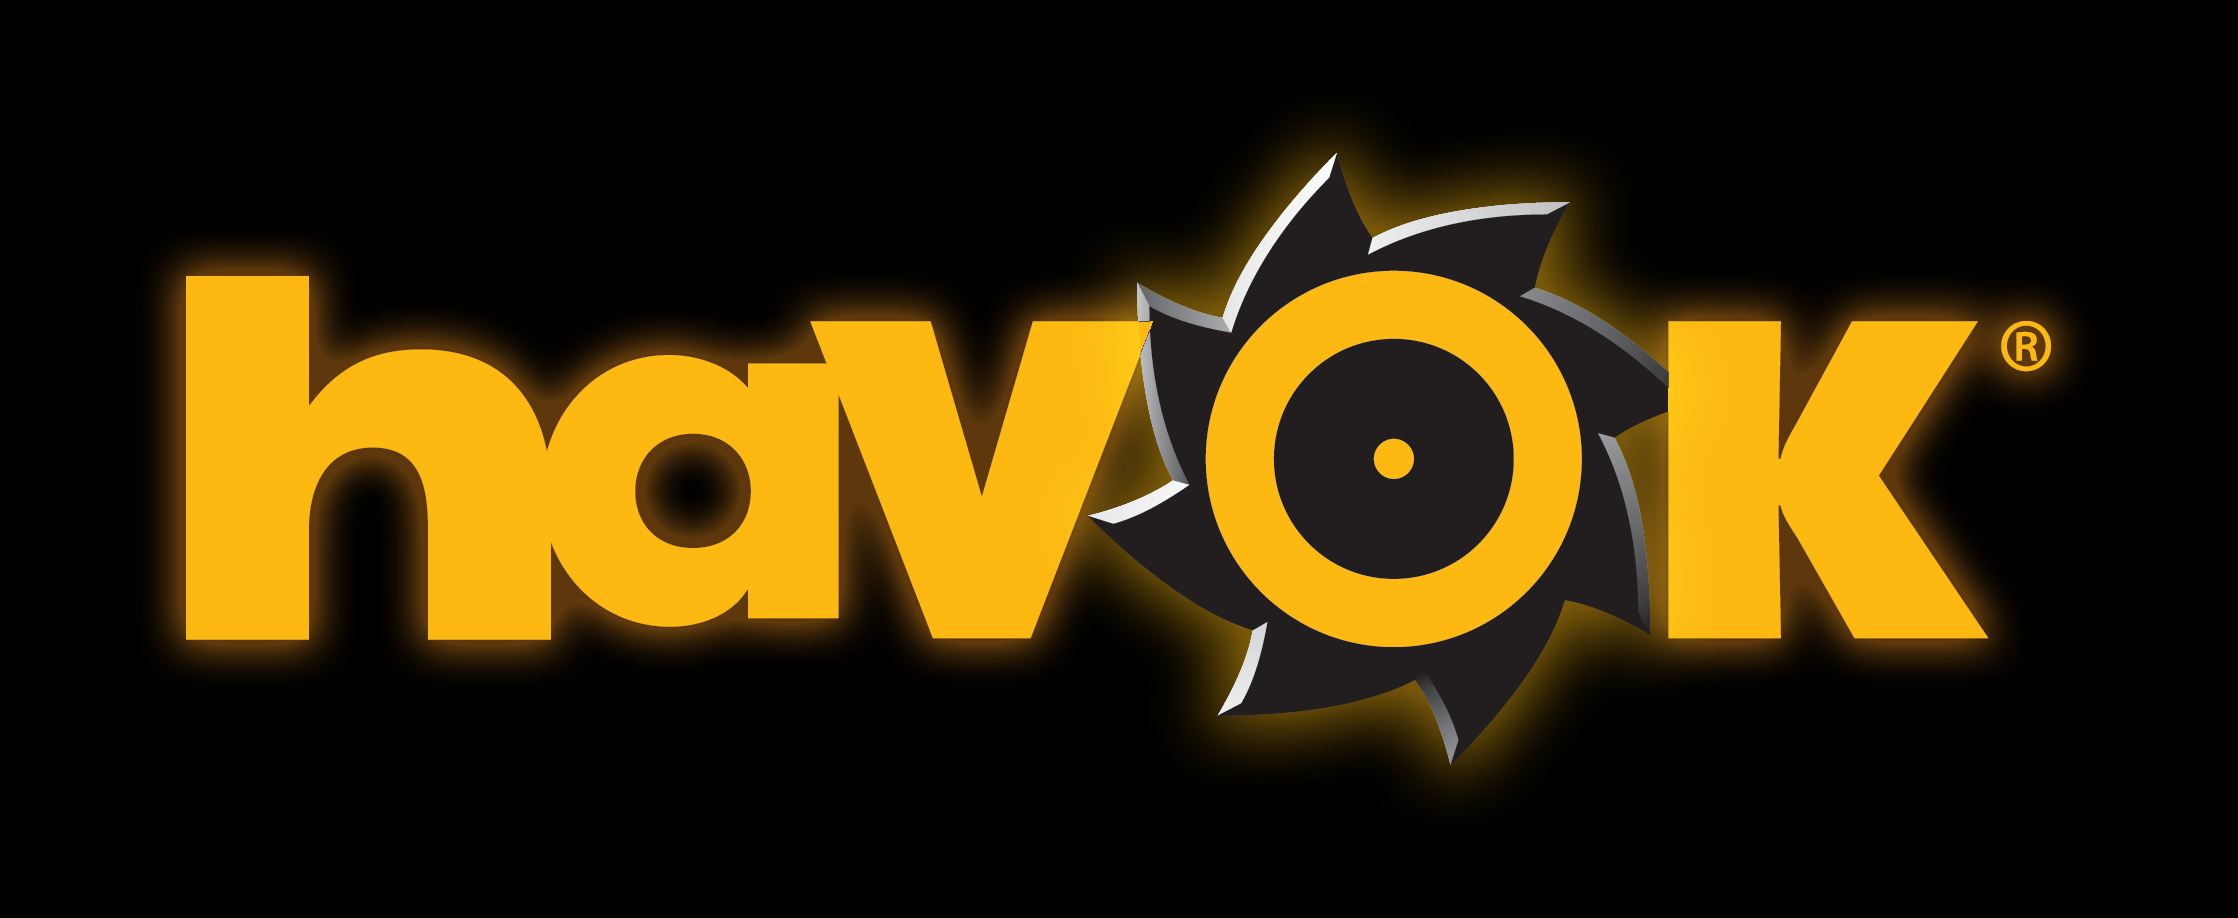 Microsoft adquire a Havok